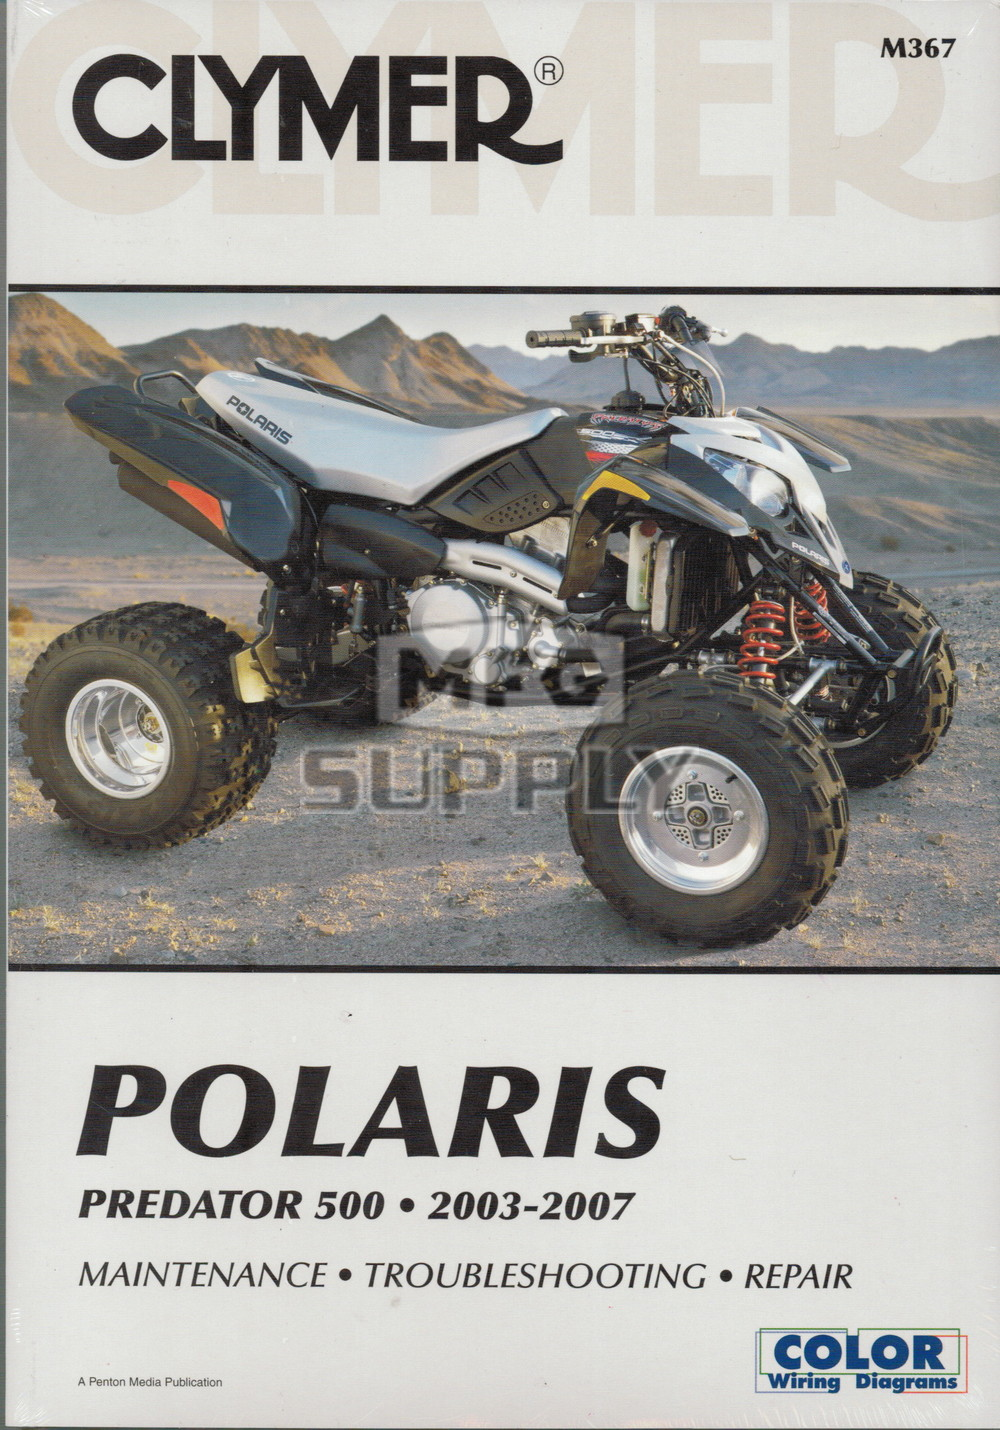 Polaris Predator 500 Manual Outlaw 90 Wiring Diagram Cm367 03 07 Repair Maintenance Rh Mfgsupply Com Parts De Taller